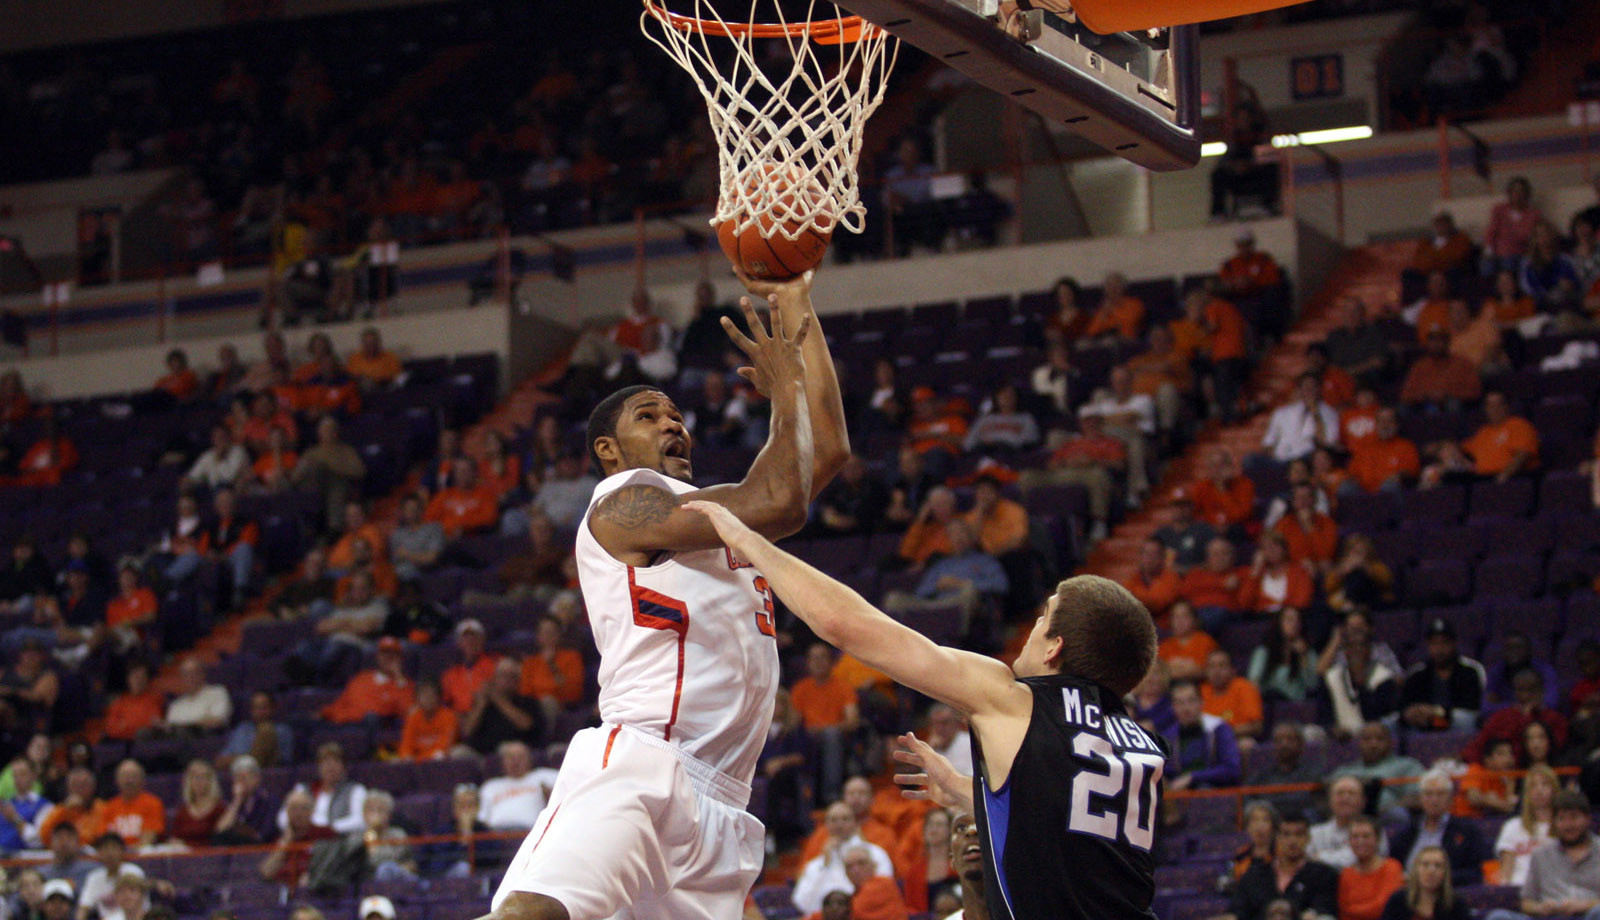 Clemson Controls Paint in 59-44 Victory over Marist to Conclude Old Spice Classic